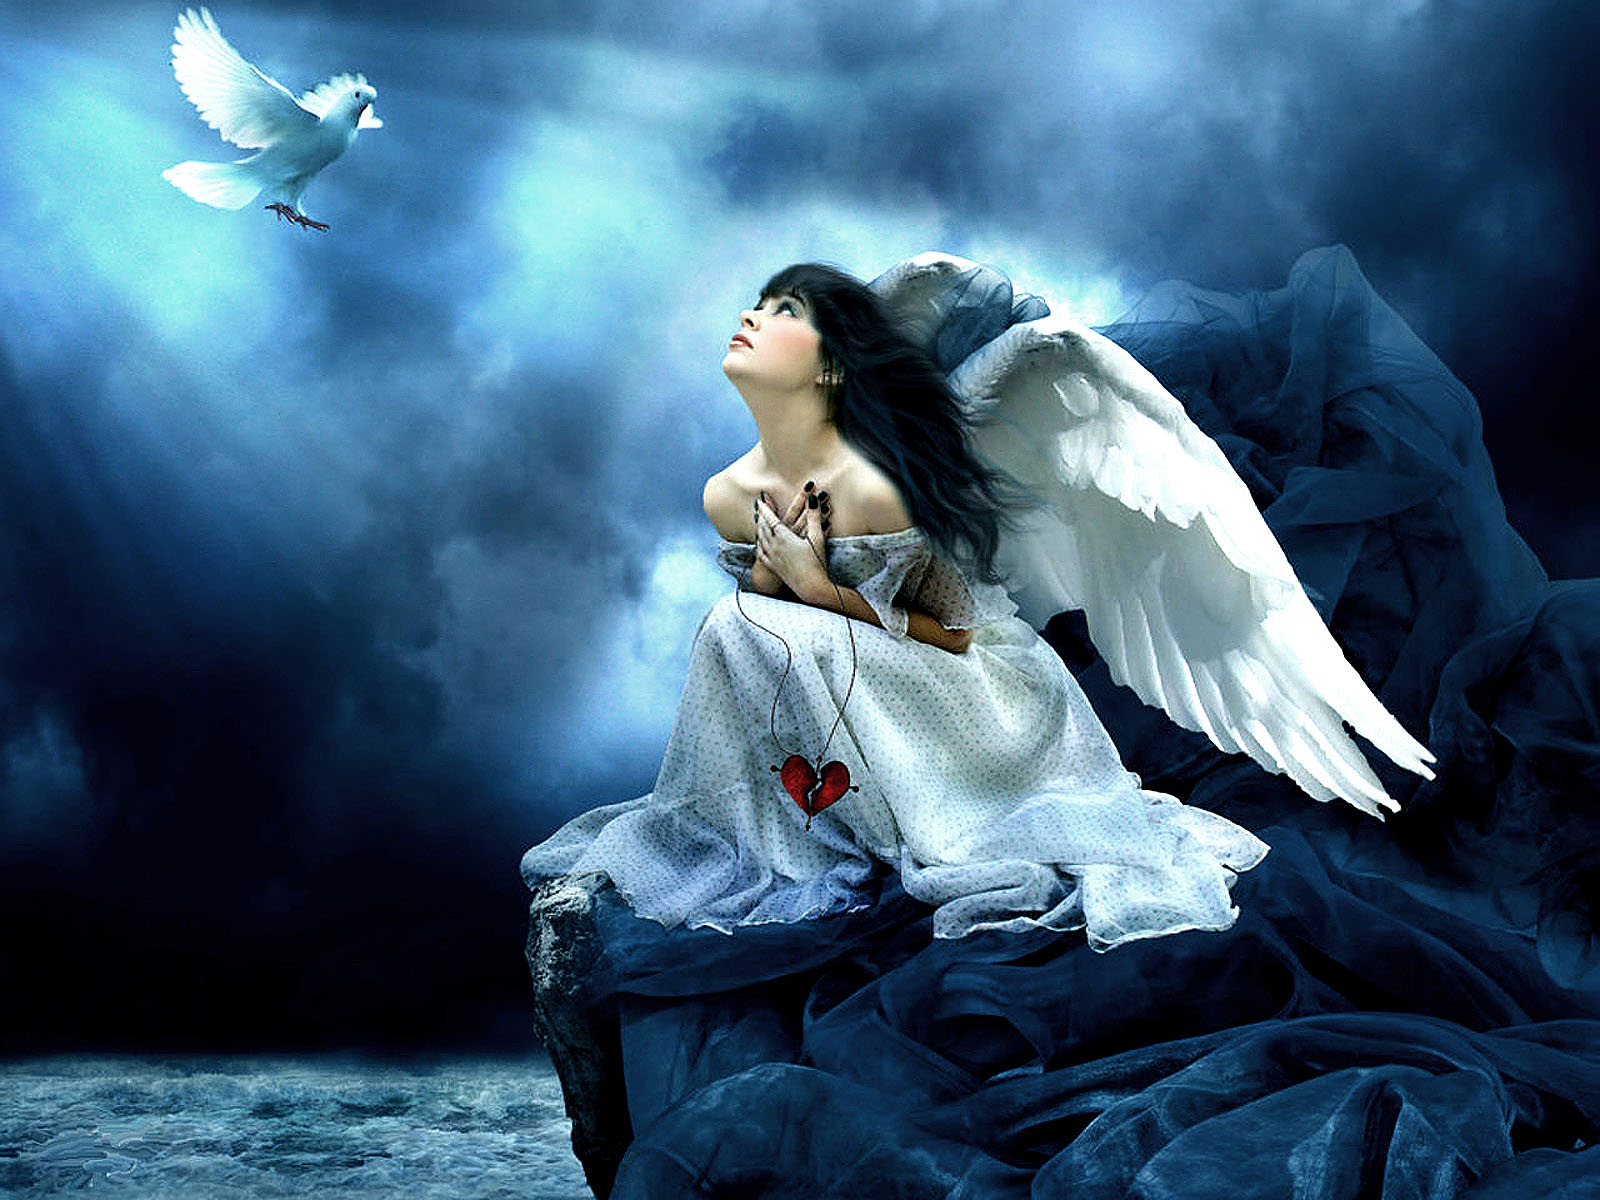 angel wallpapers for laptops - photo #27